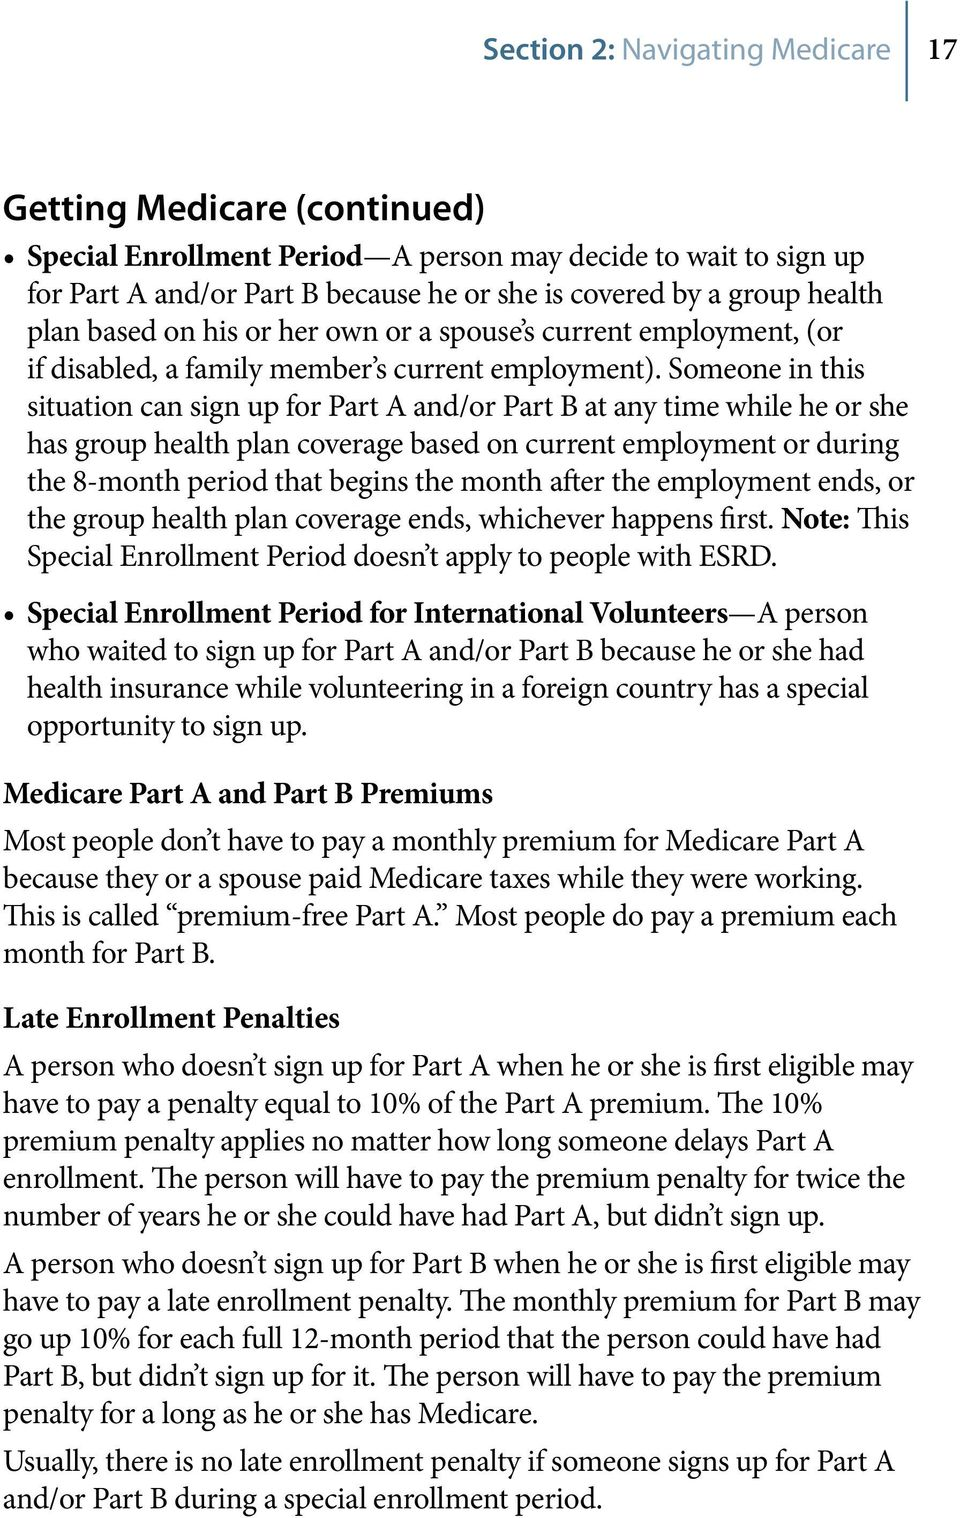 Someone in this situation can sign up for Part A and/or Part B at any time while he or she has group health plan coverage based on current employment or during the 8-month period that begins the